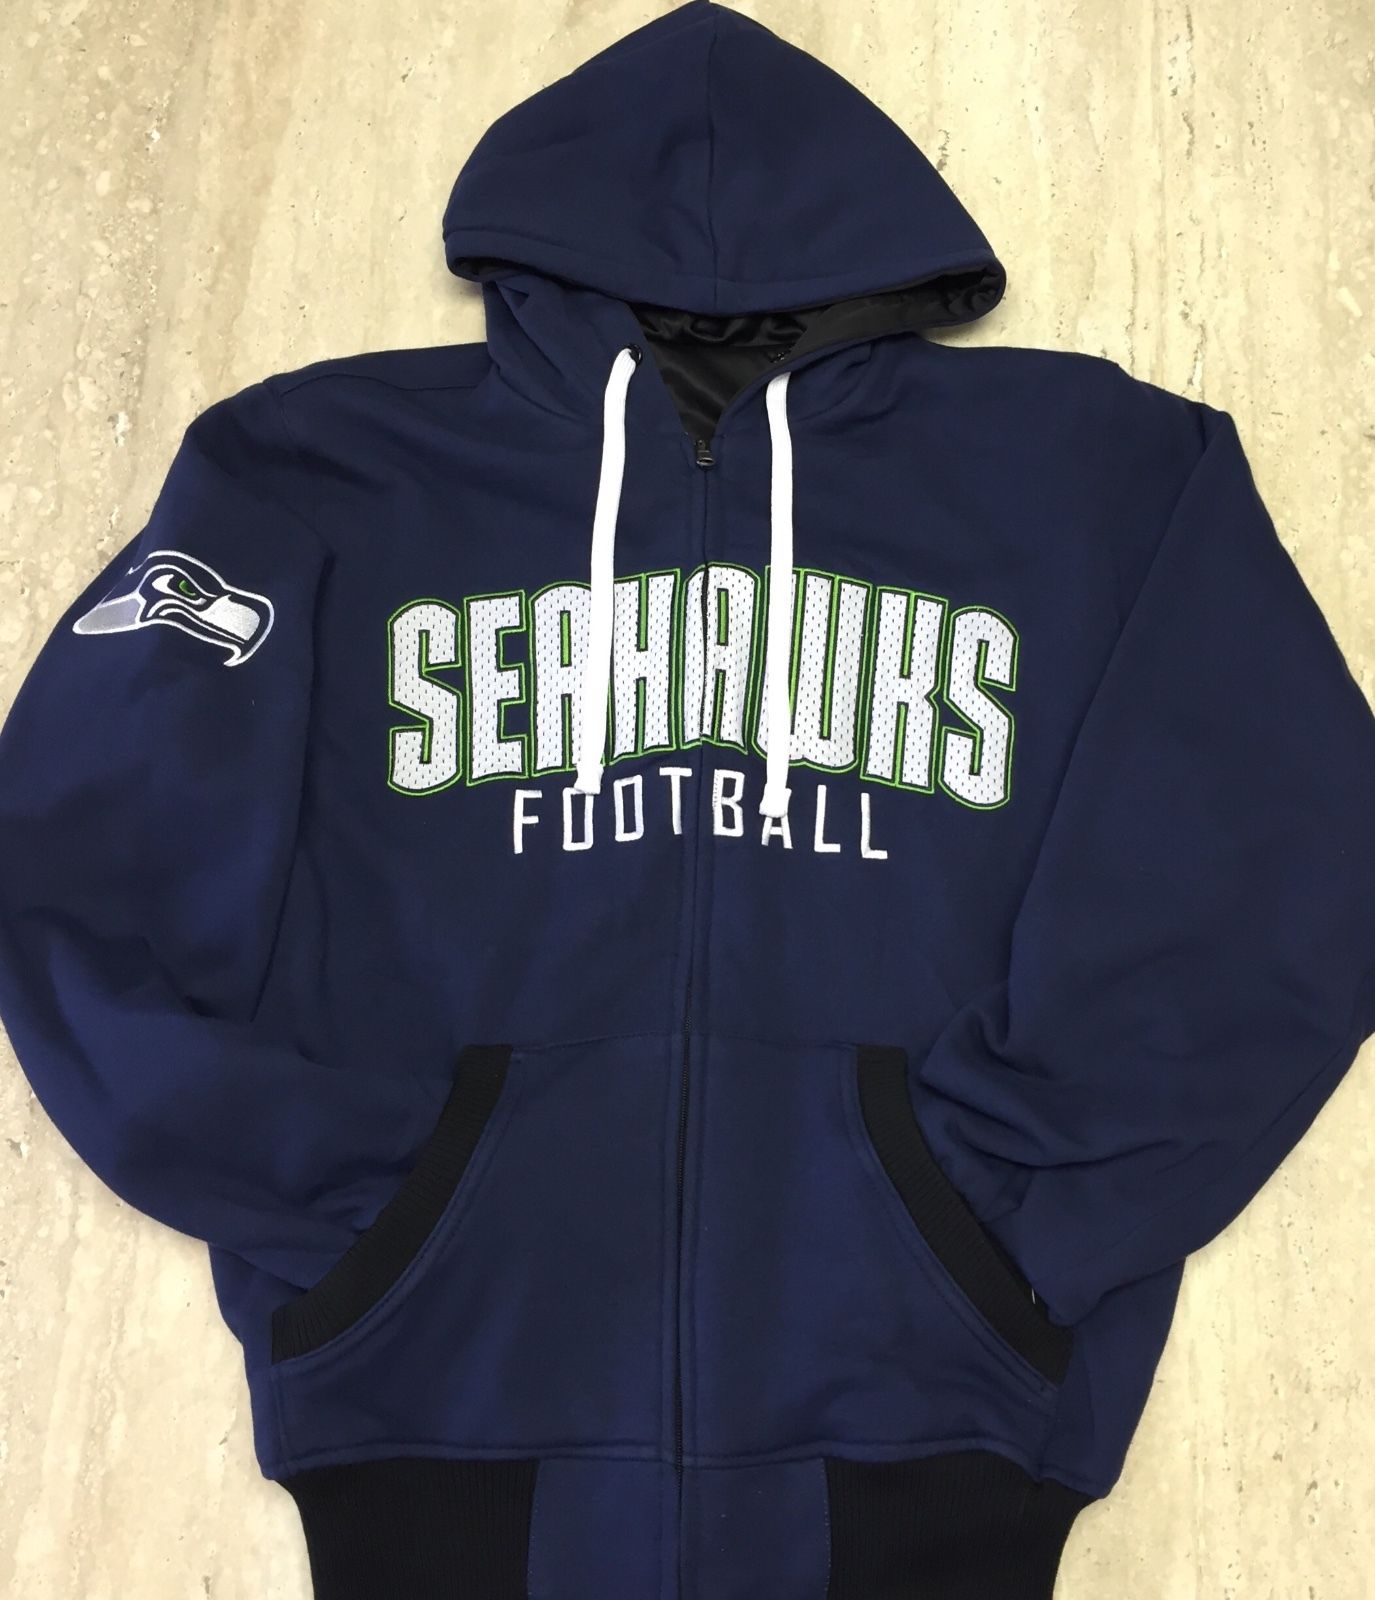 online store b31a2 05a21 Men's Seattle Seahawks Official NFL Reversible Hoodie